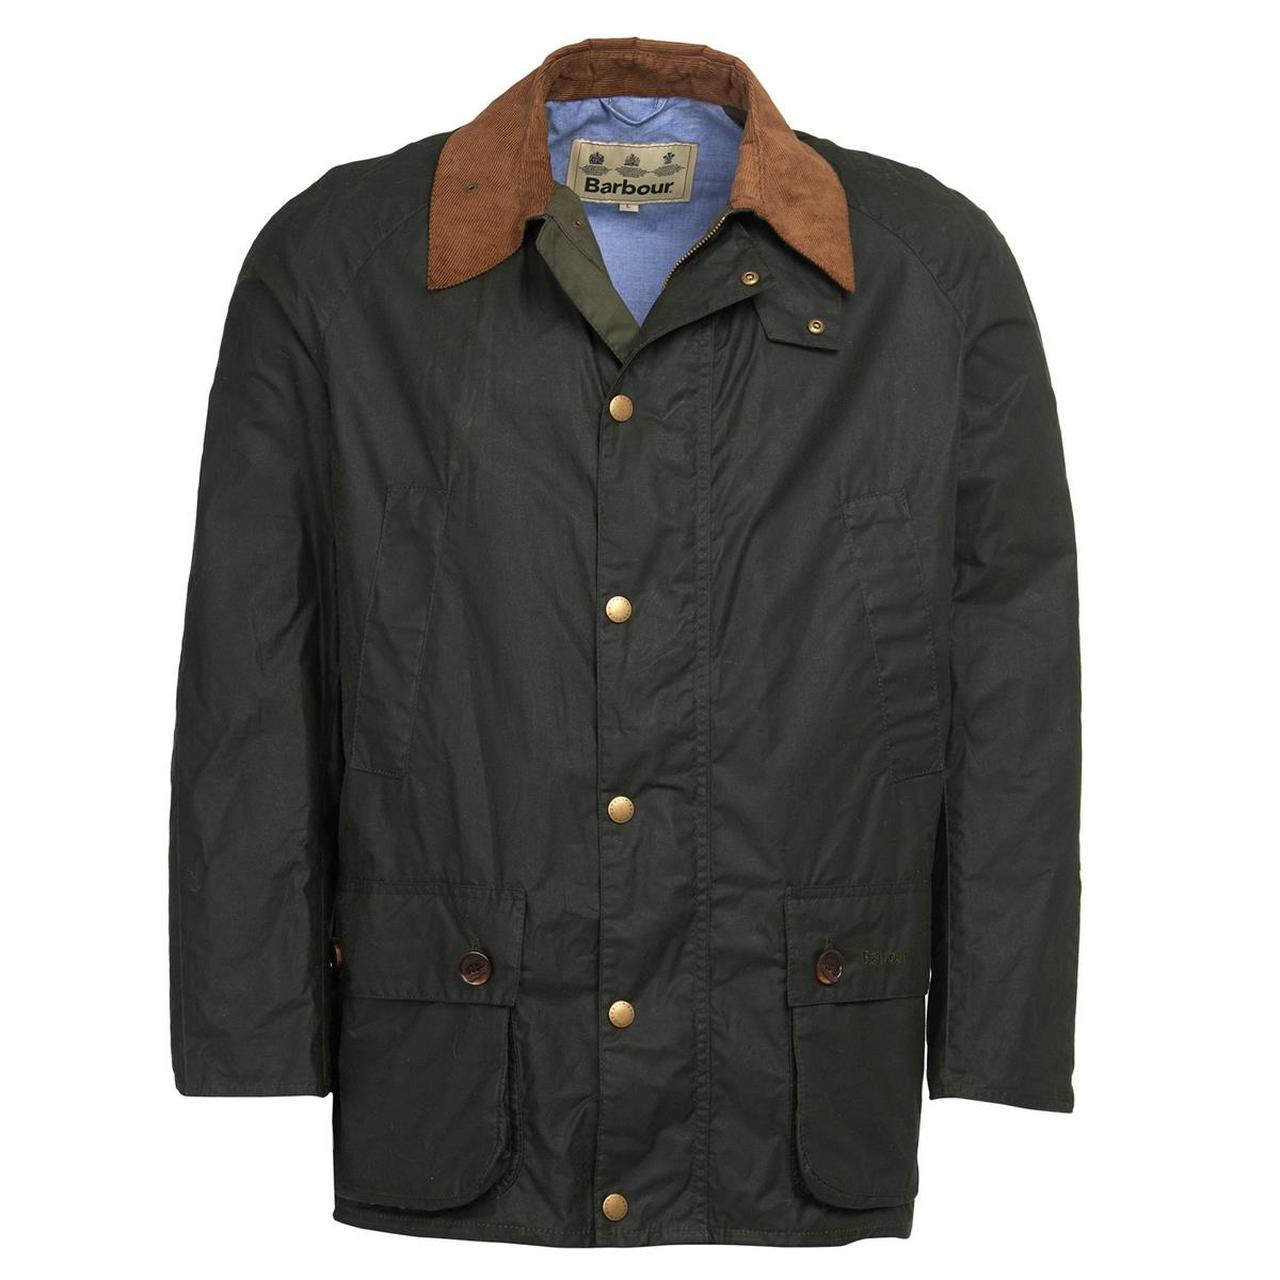 Barbour Hopsack waxed jacket in green